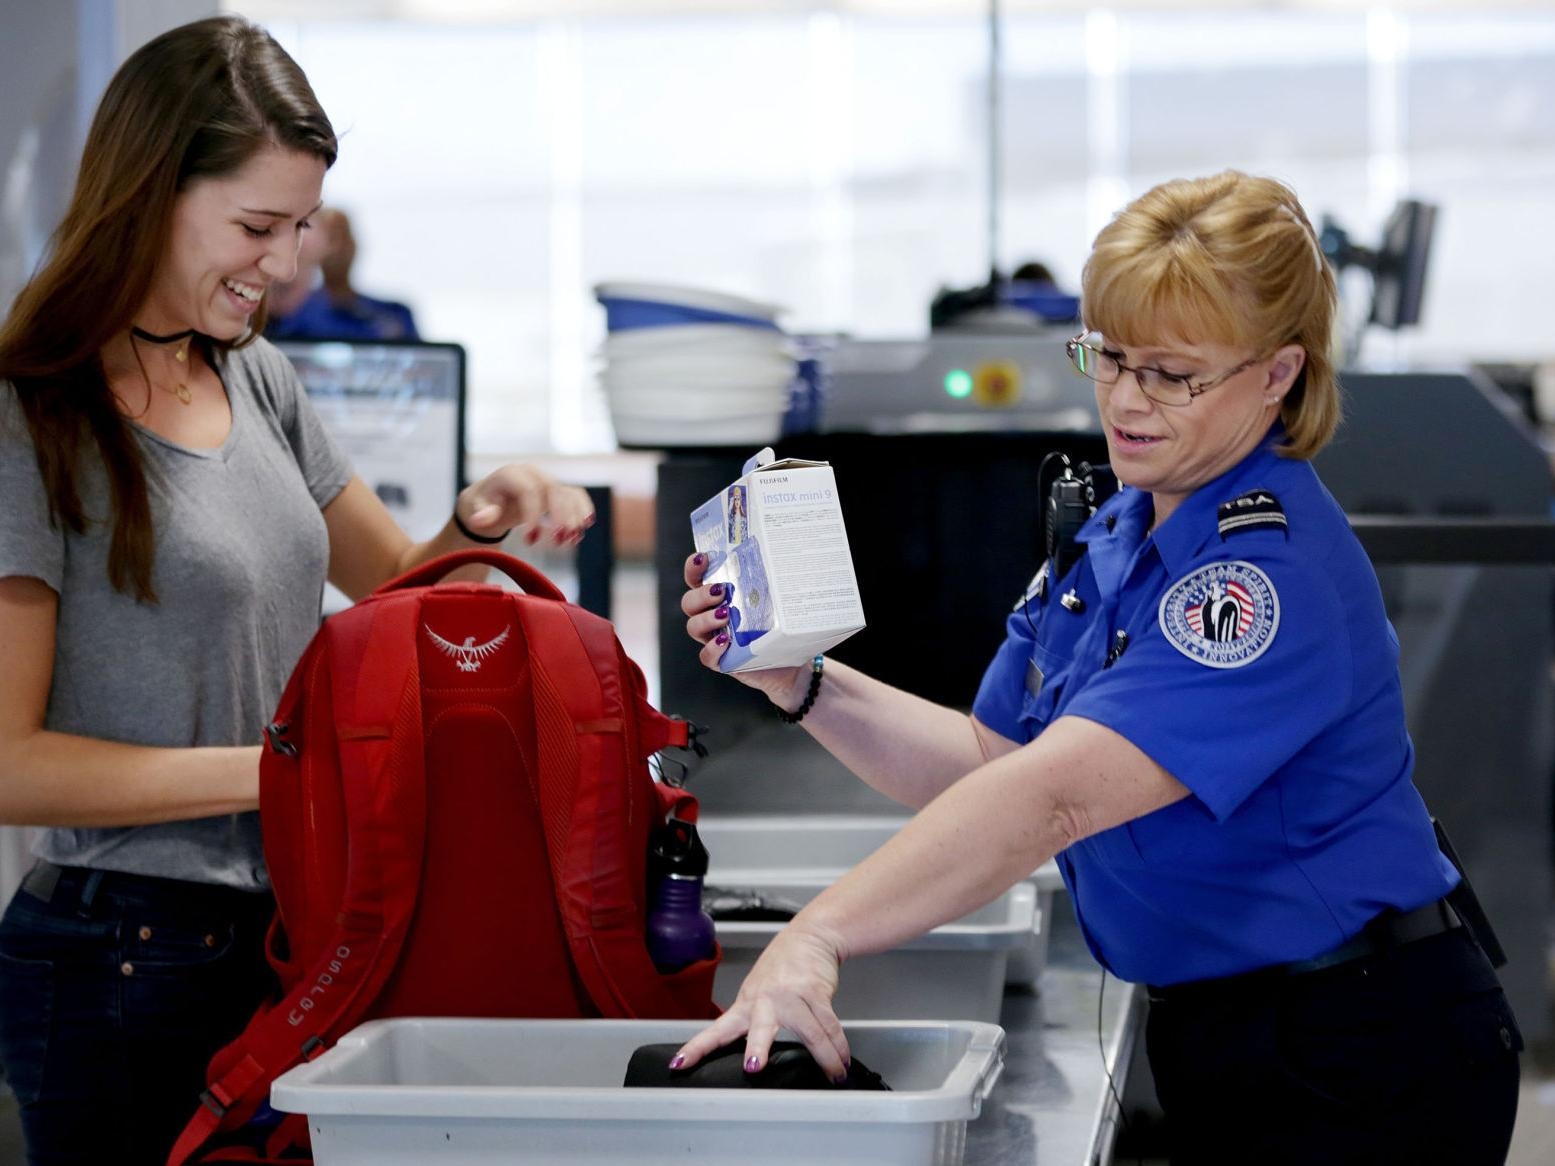 Tucson airport rolls out new screening rules on electronics | Business News  | tucson.com